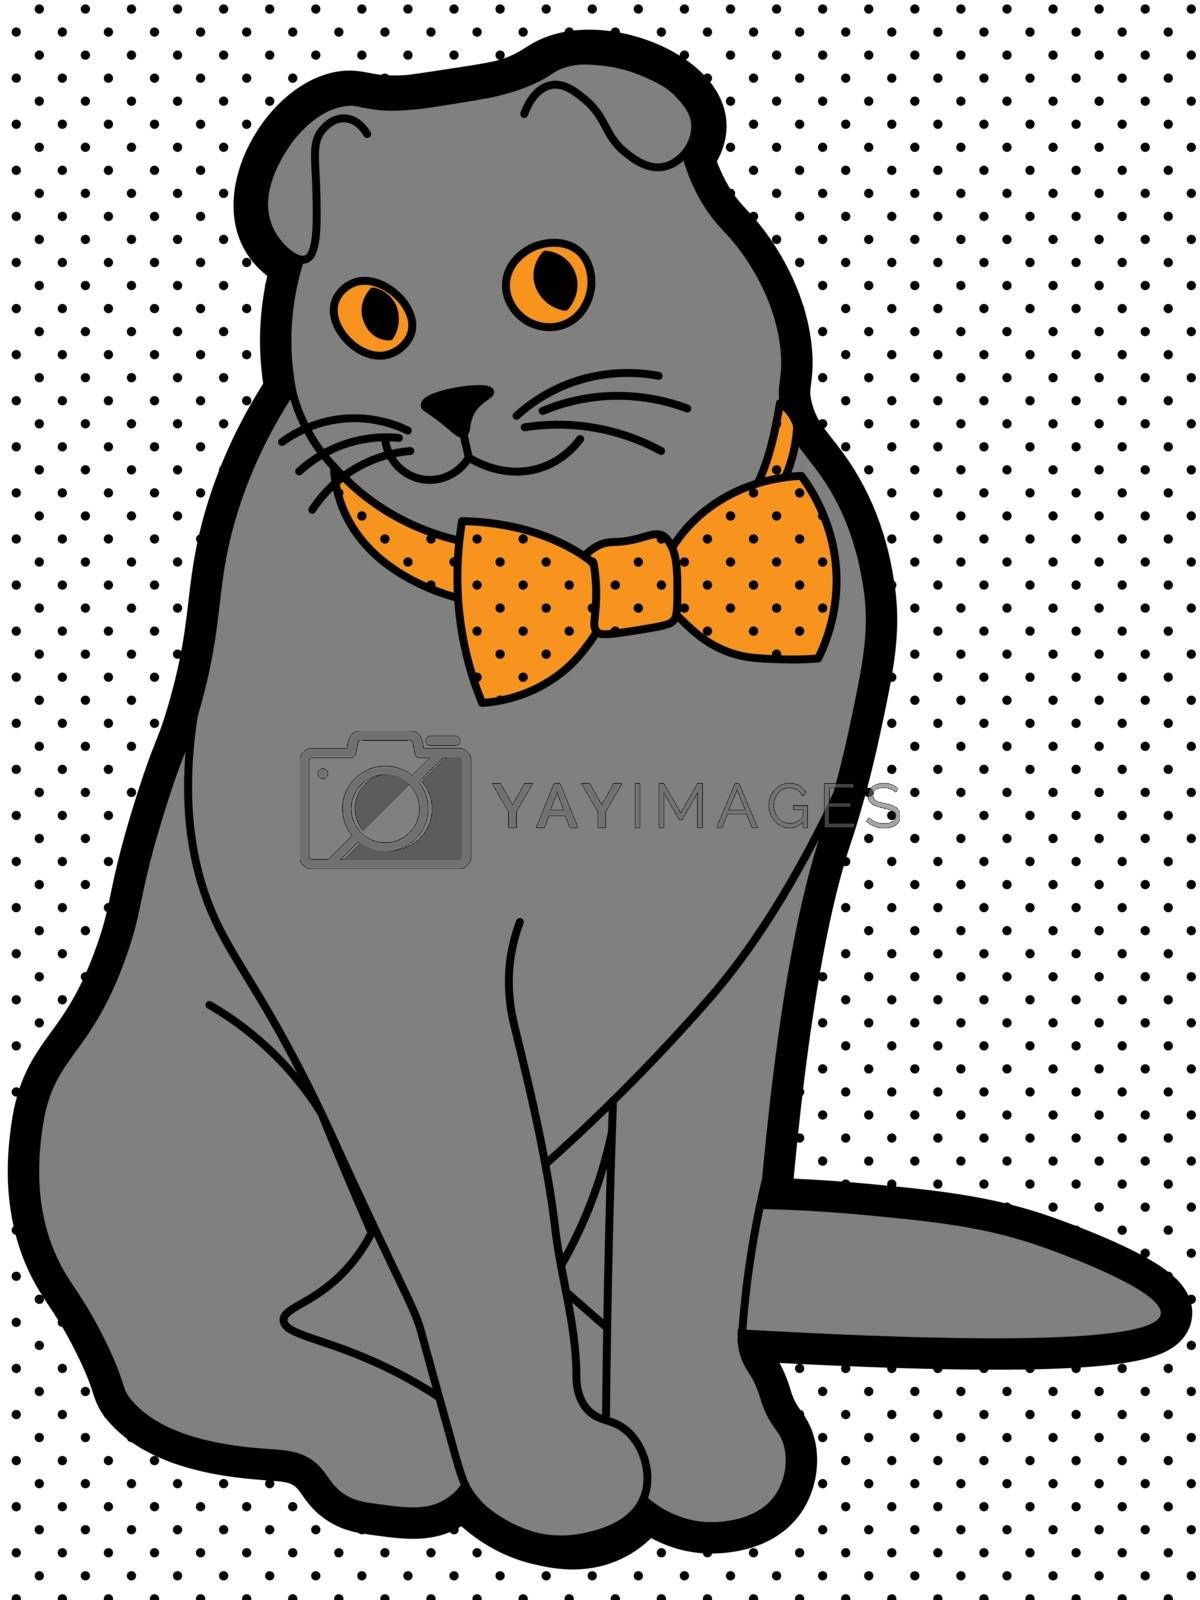 cute and weird grey cat scottish fold with the bowtie